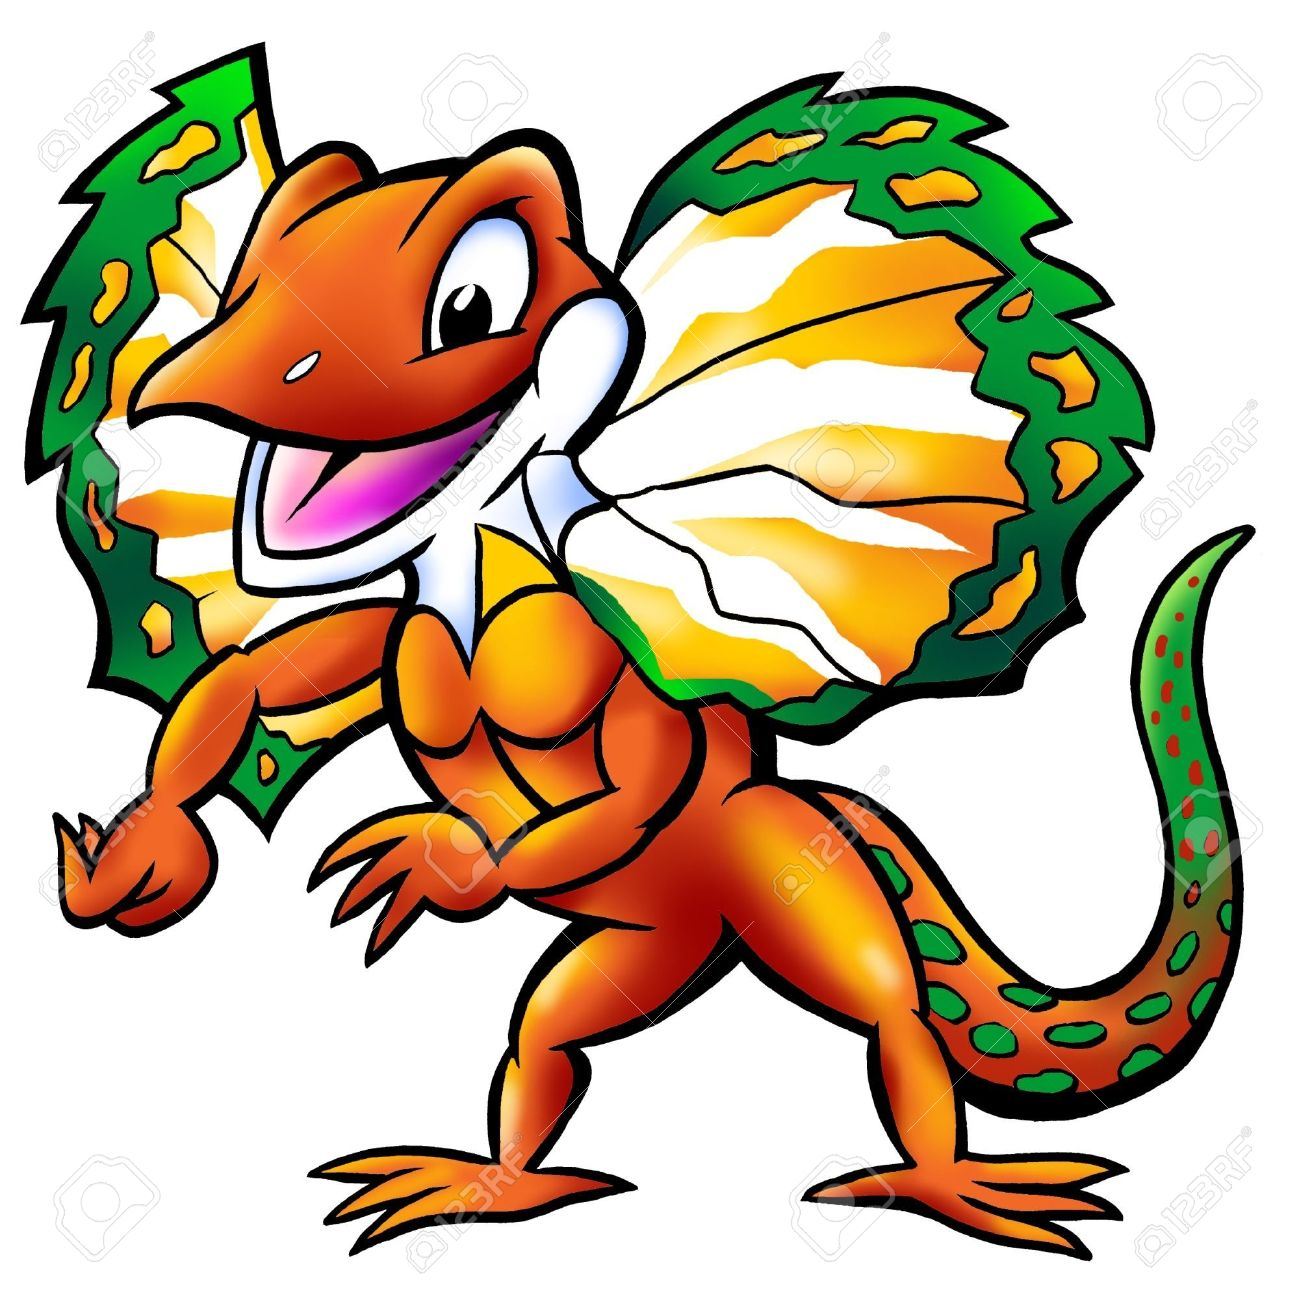 Happy Frilled Lizard Mascot Stock Photo, Picture And Royalty Free.